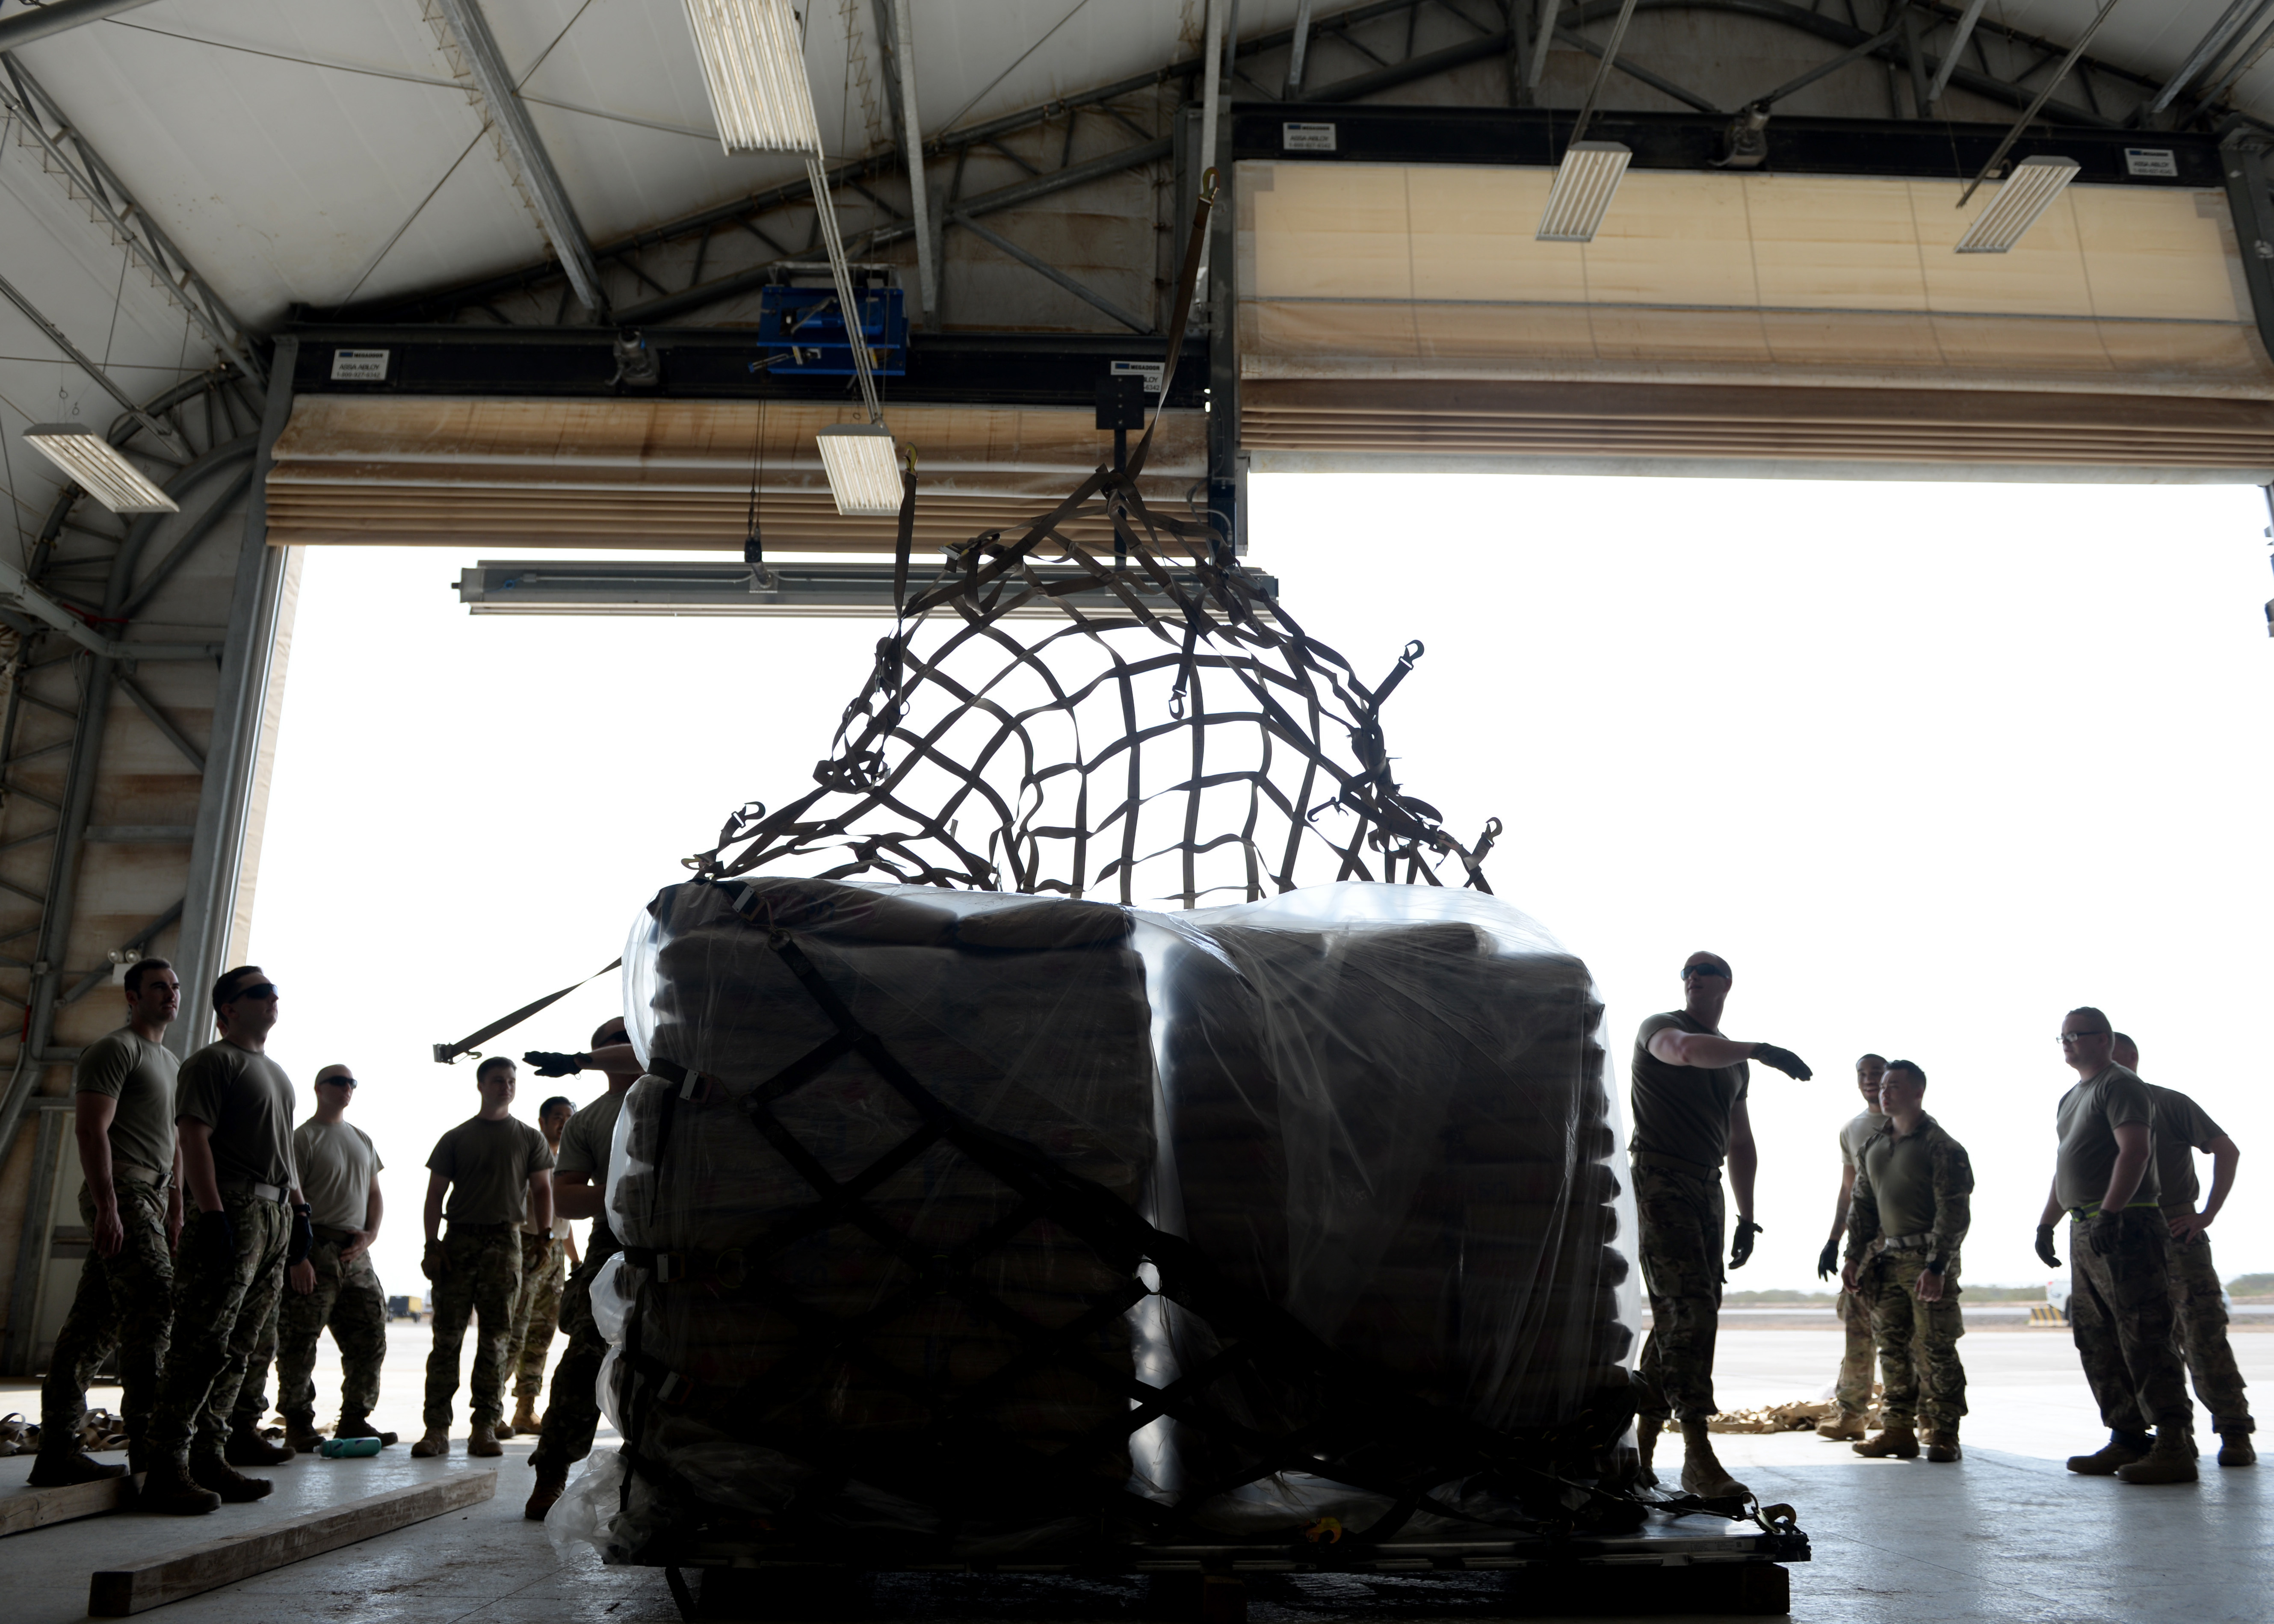 U.S. Air Force Airmen from the 435th Contingency Response Group, Ramstein Air Base, Germany, currently at Camp Lemonnier, Djibouti, supporting Combined Joint Task Force-Horn of Africa (CJTF-HOA), prepare a cargo pallet used to transport U.S. Agency for International Development (USAID) supplies at Camp Lemonnier, April 1, 2019, for the U.S. Department of Defense's (DoD) humanitarian relief effort in the Republic of Mozambique and surrounding areas following Cyclone Idai. Teams supporting CJTF-HOA, which is leading the DoD relief effort, prepared cargo for transport following a call for assistance from the USAID Disaster Assistance Response Team. (U.S. Air Force photo by Staff Sgt. Franklin R. Ramos)